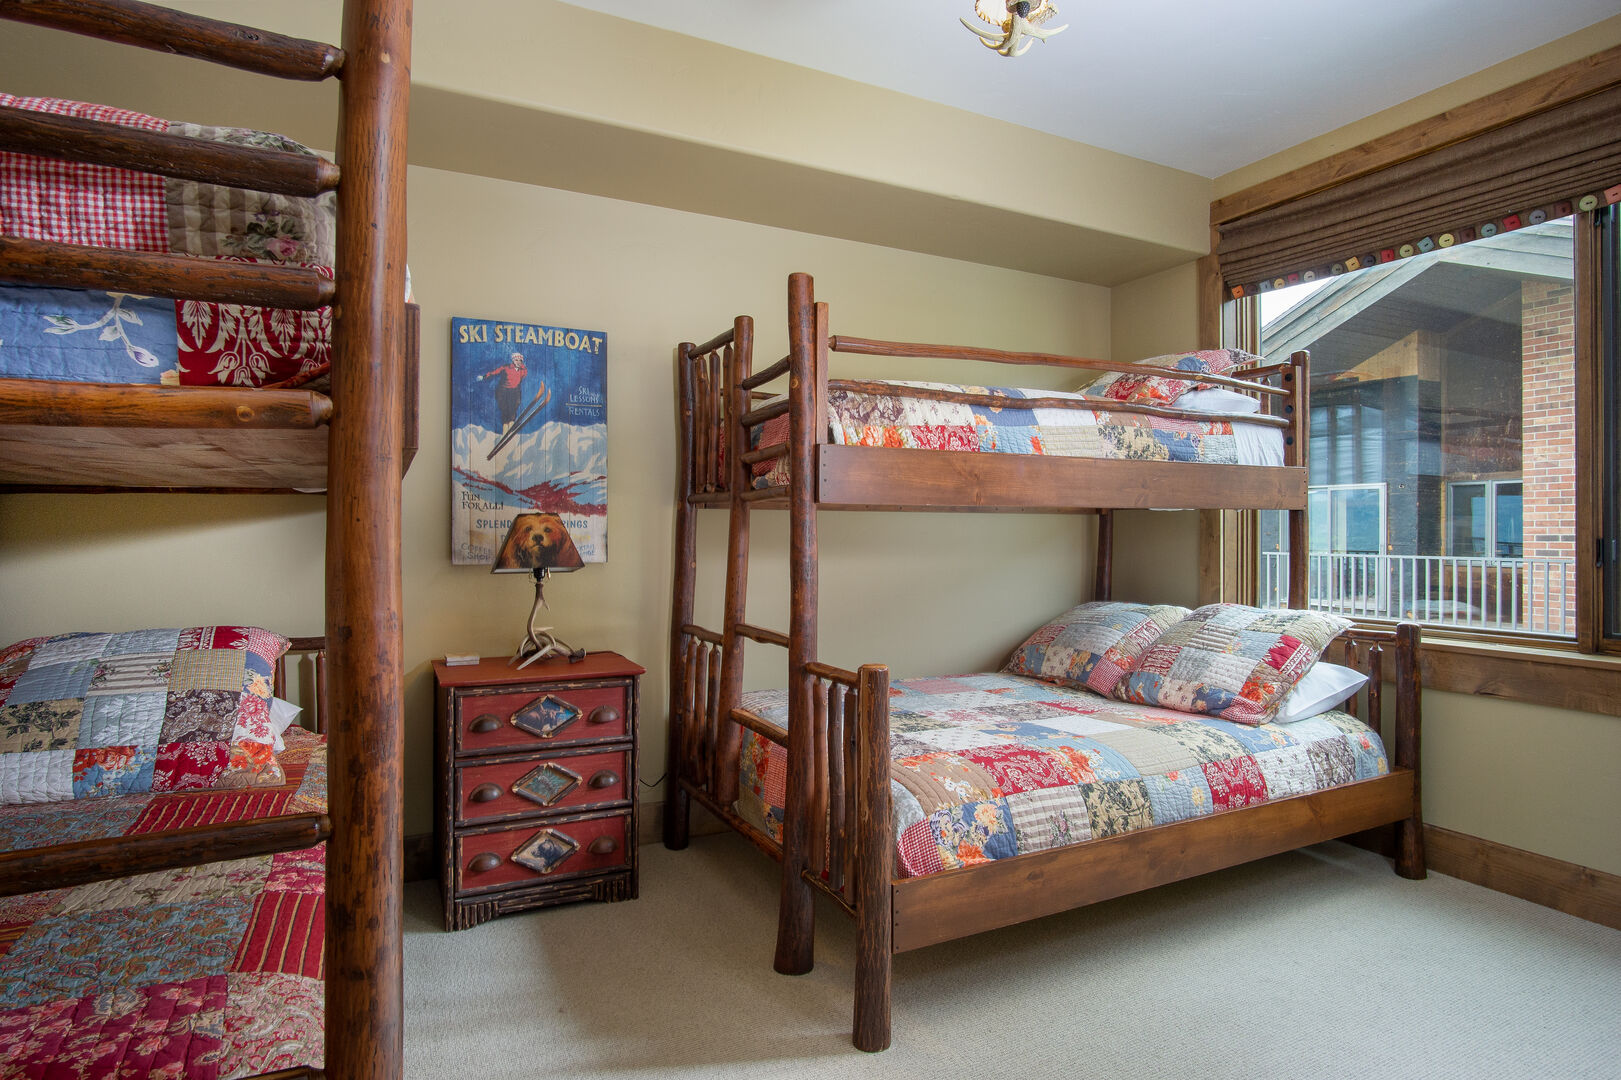 Bedroom with Two Bunk Beds and Nightstand.